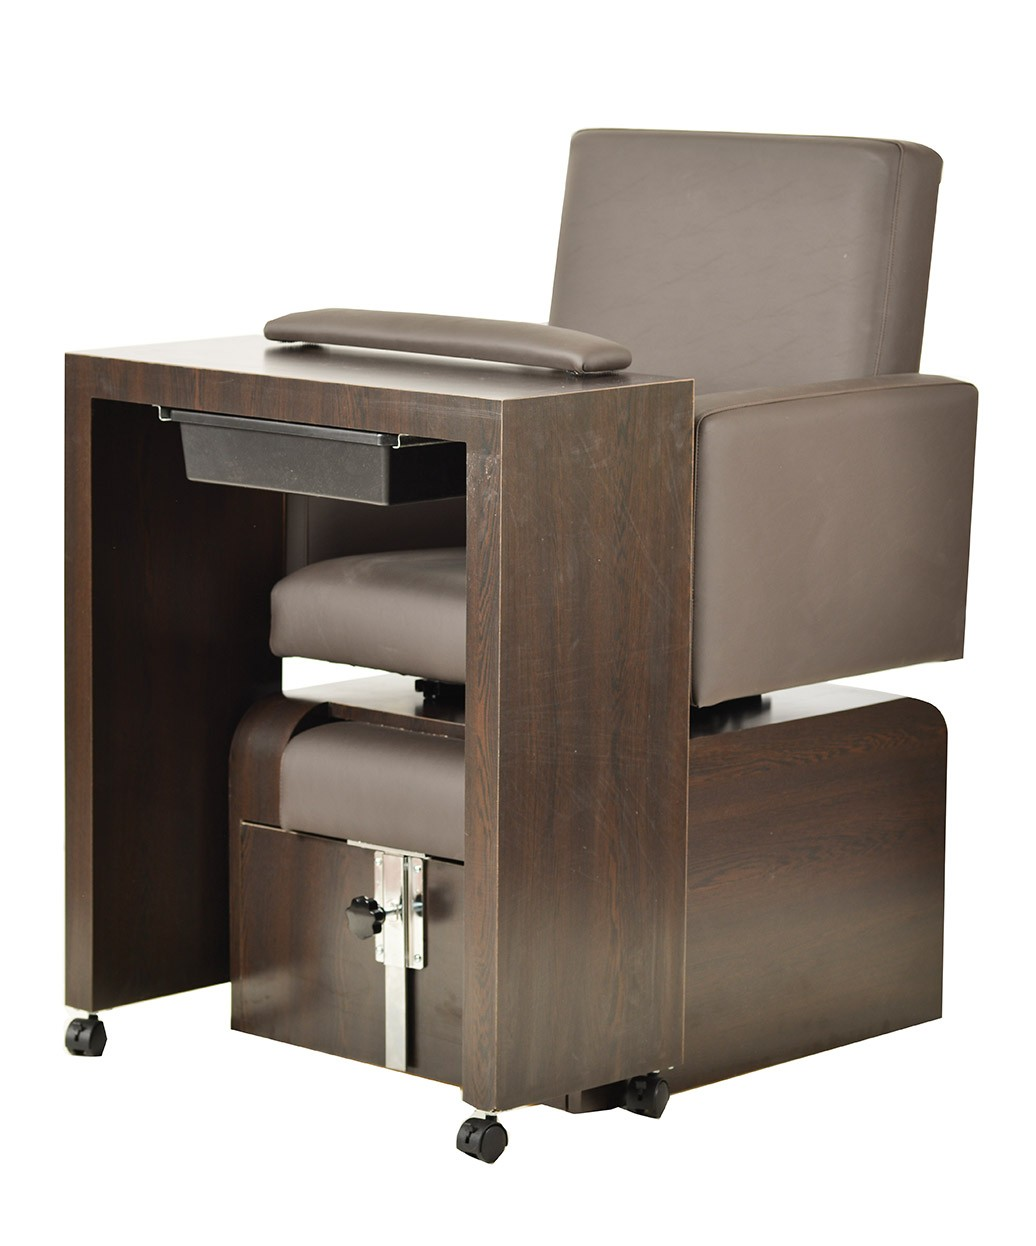 Pibbs nc01 san remo manicure table for Nail table and chairs